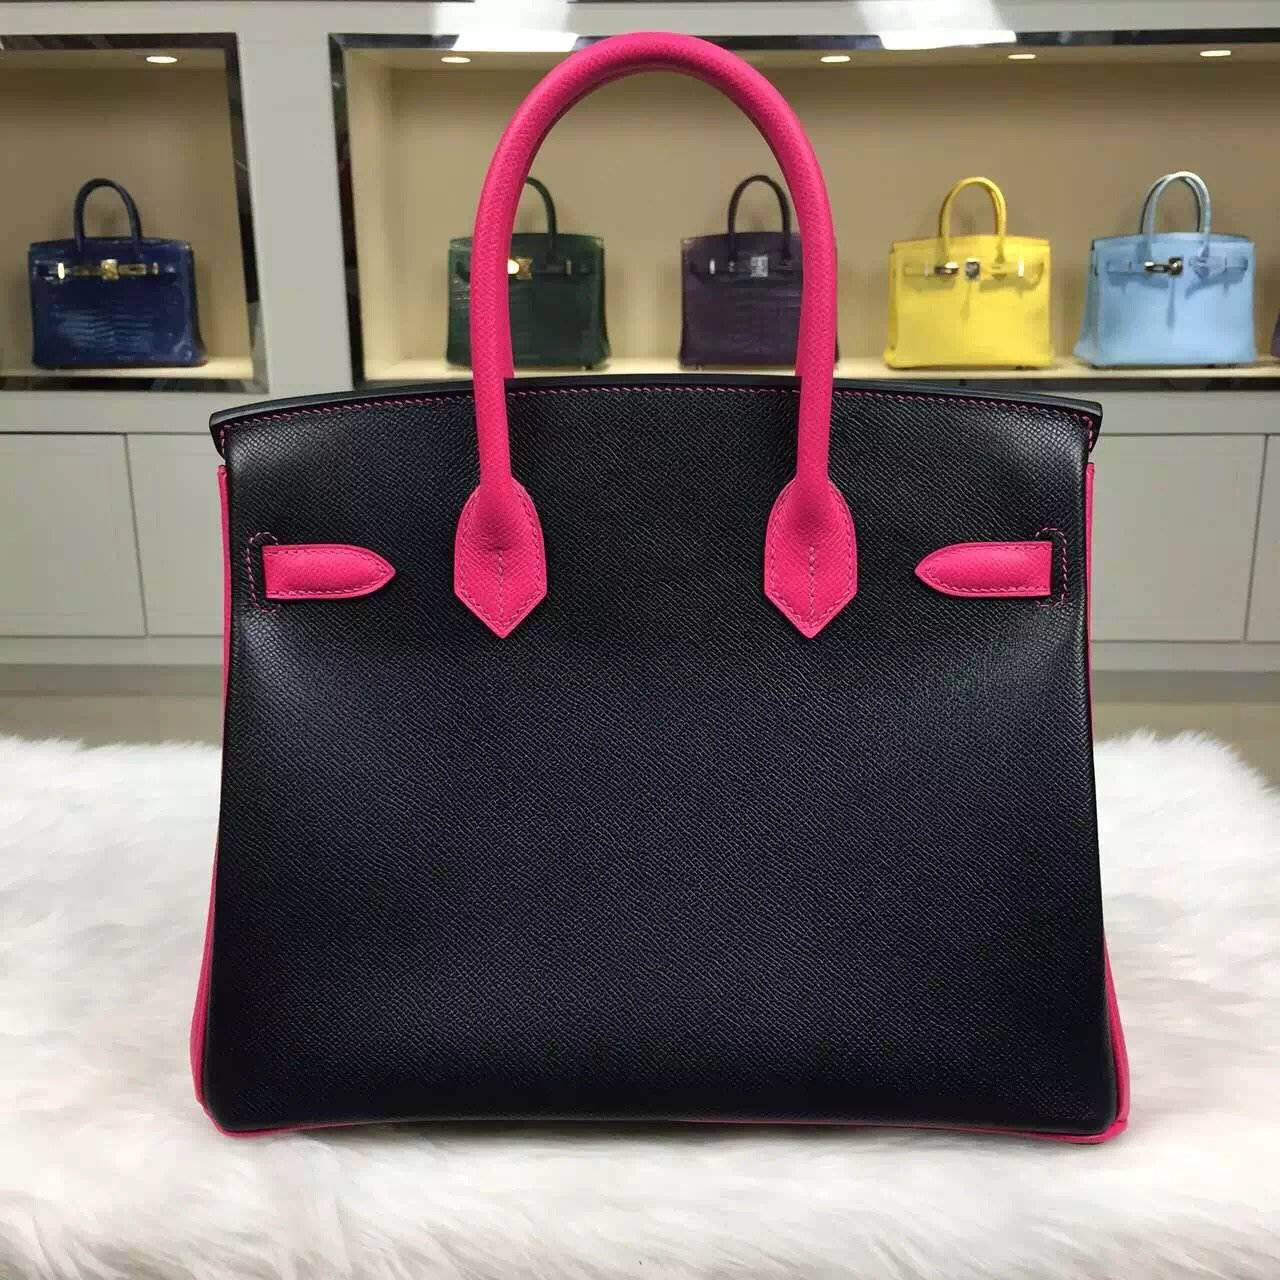 High Quality Hermes CK89 Black & E5 Candy Pink Epsom Leather Birkin30cm Gold Hardware